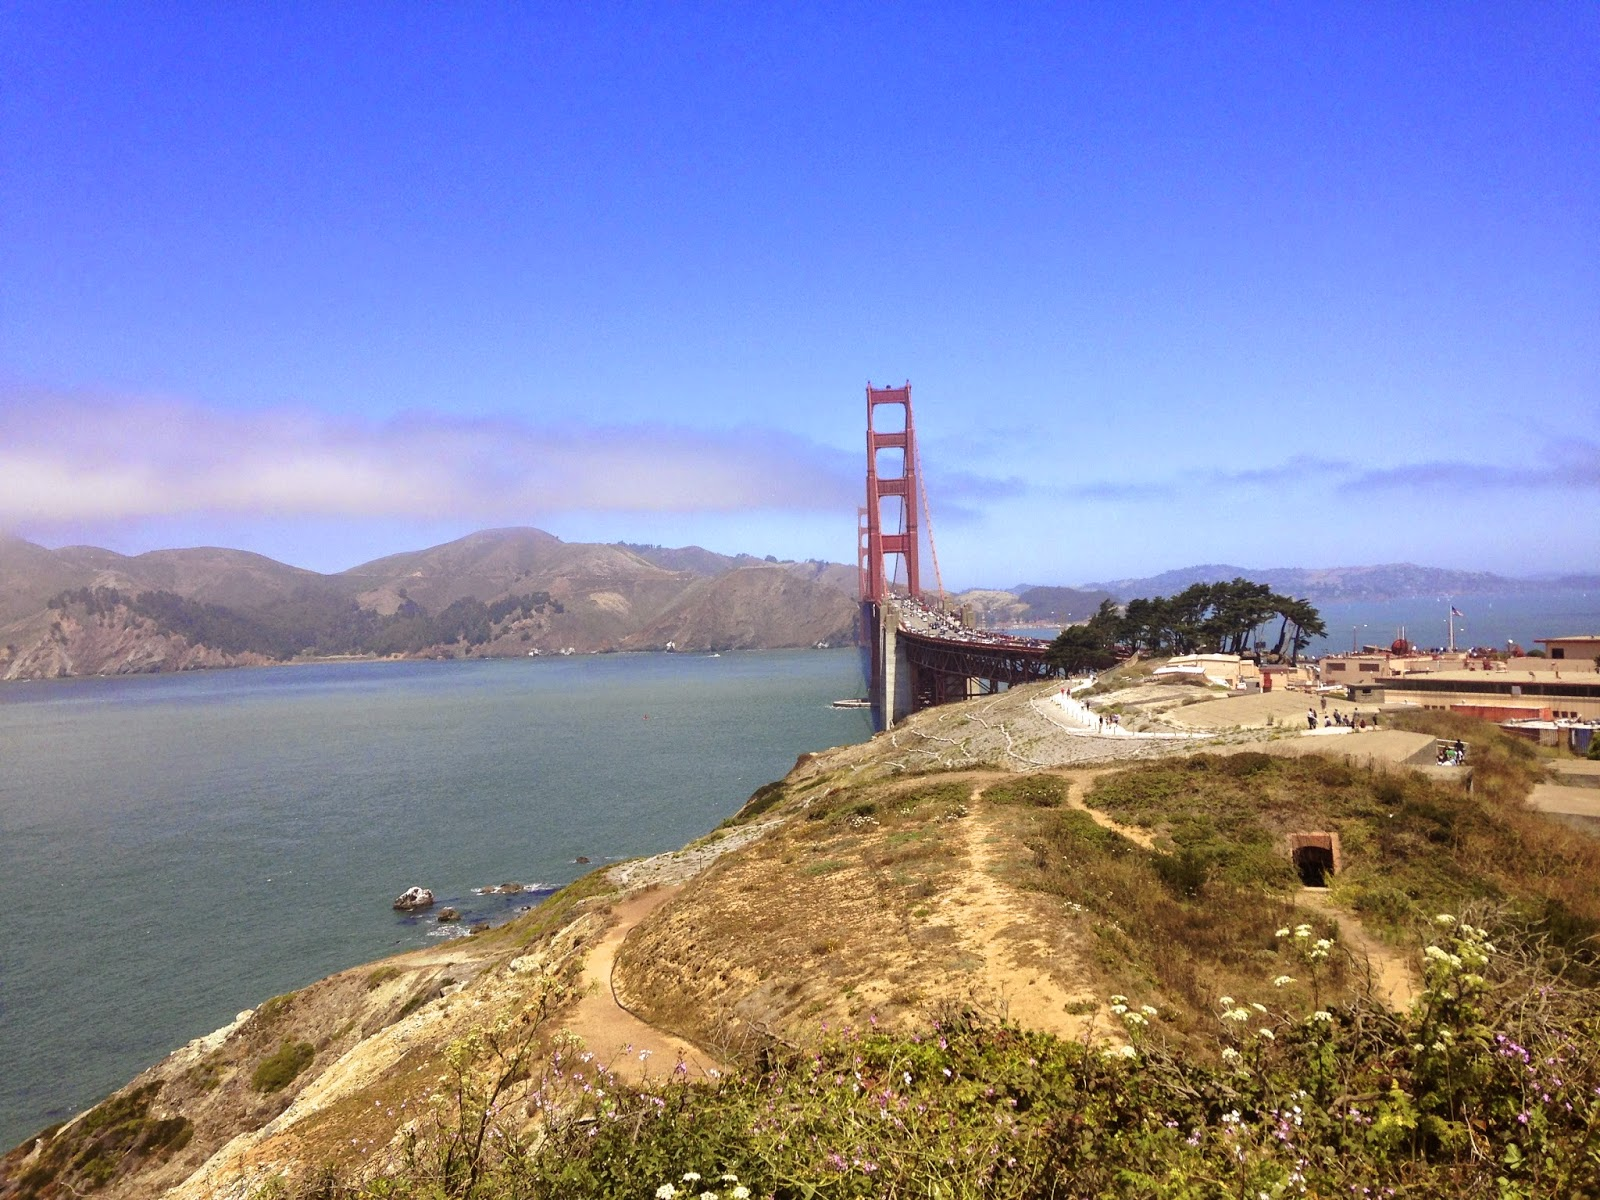 San Francisco golden gate bridge travel blog pacific coast highway cali dream California vaca